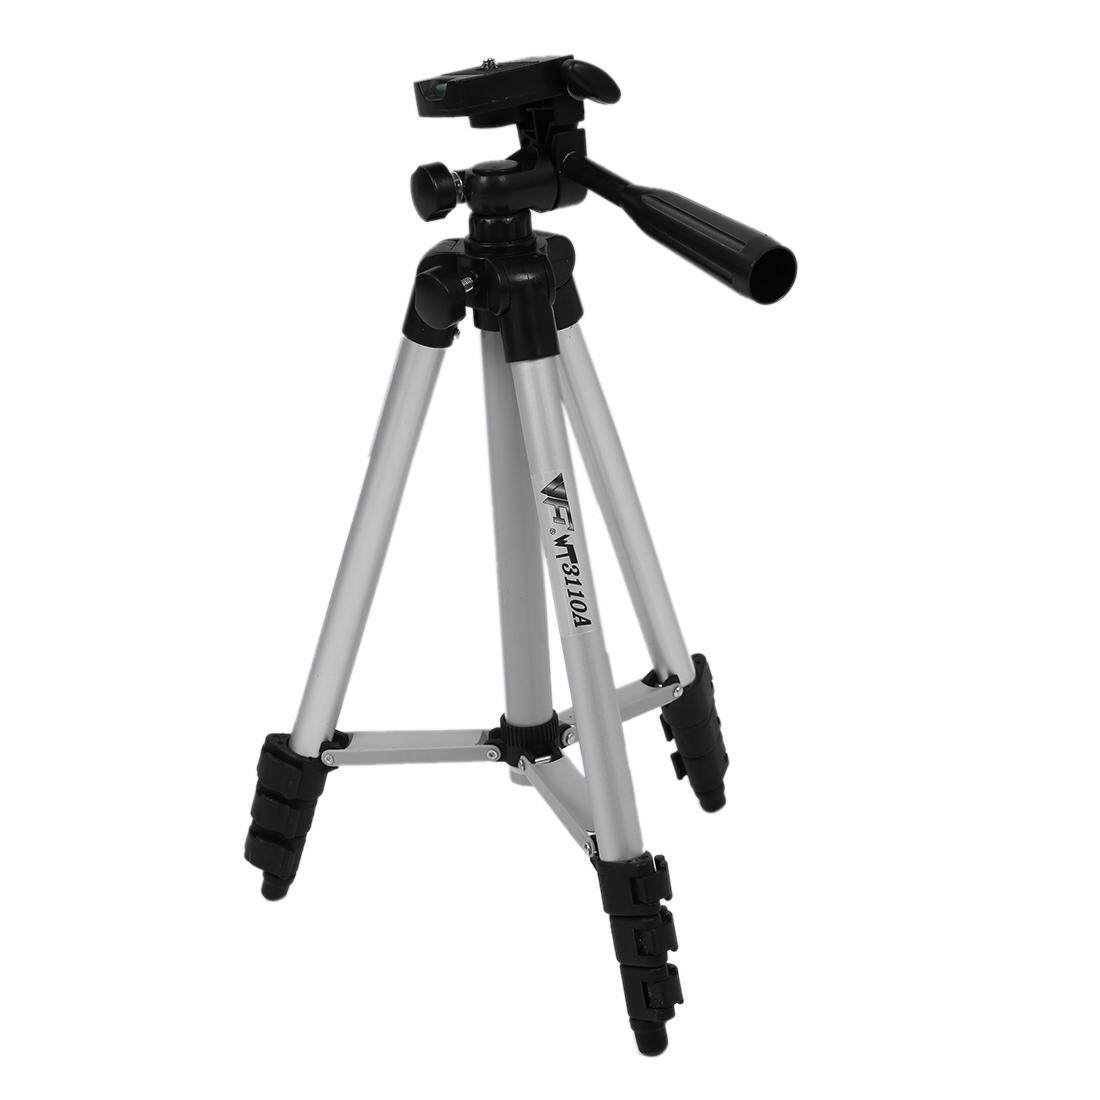 Weifeng 3110A tripod light digital camera card machine three feet small camera photographic equipment - intl